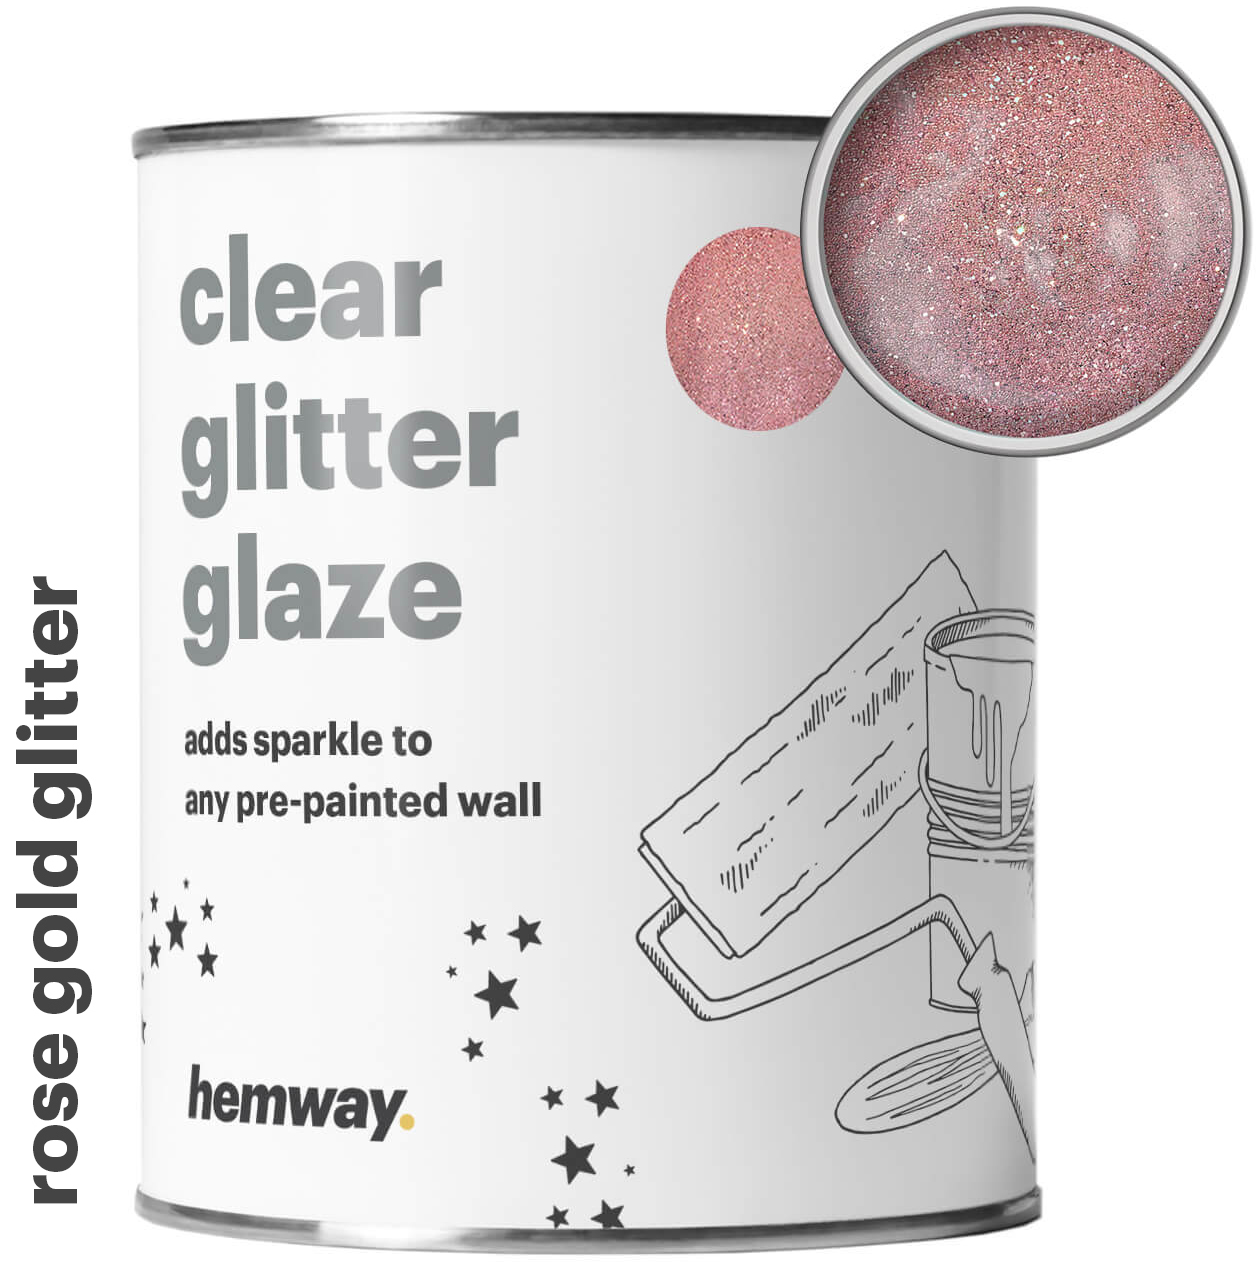 Details About Hemway Clear Glitter Paint Glaze Rose Gold For Pre Painted Walls Wallpaper